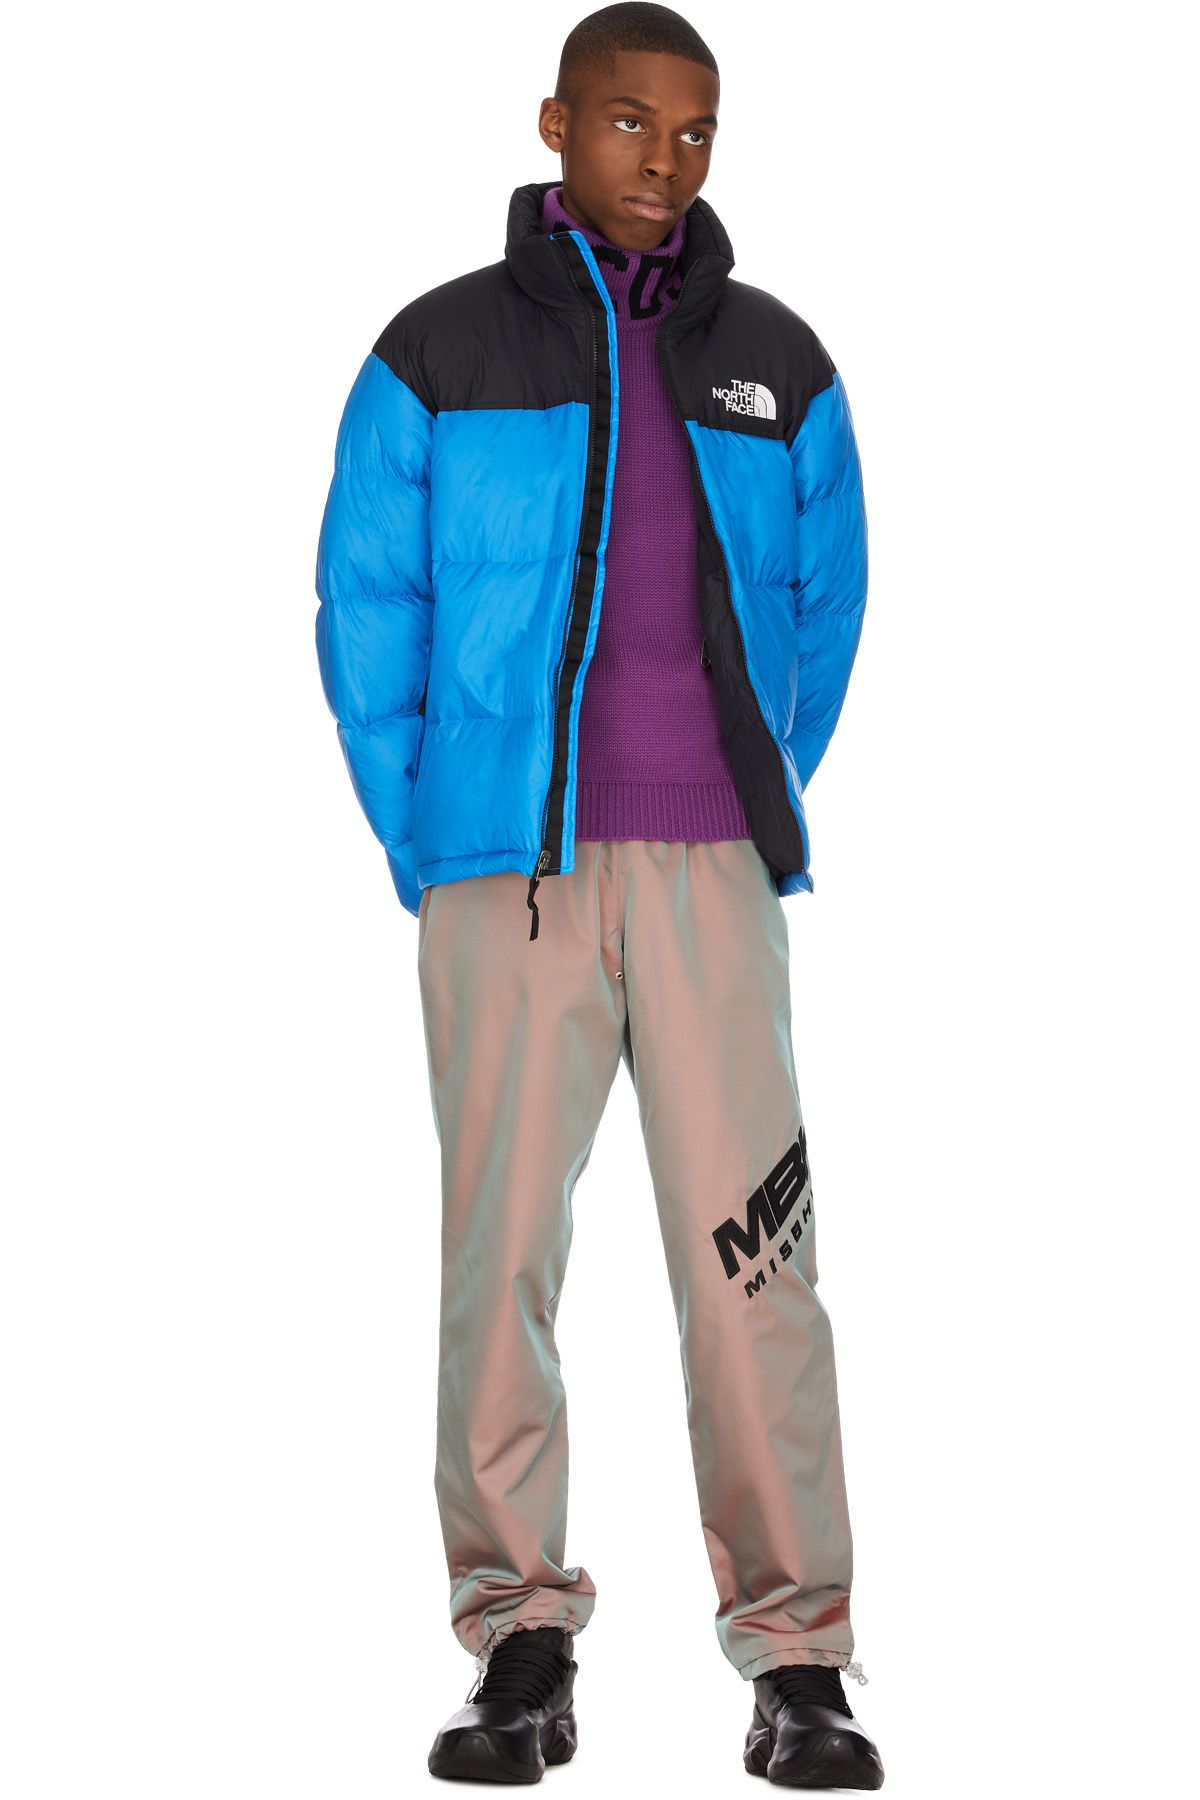 The North Face 1996 Retro Nuptse Jacket Clear Lake Blue Retro Nuptse Jacket 1996 Retro Nuptse Jacket The North Face 1996 [ 1800 x 1200 Pixel ]